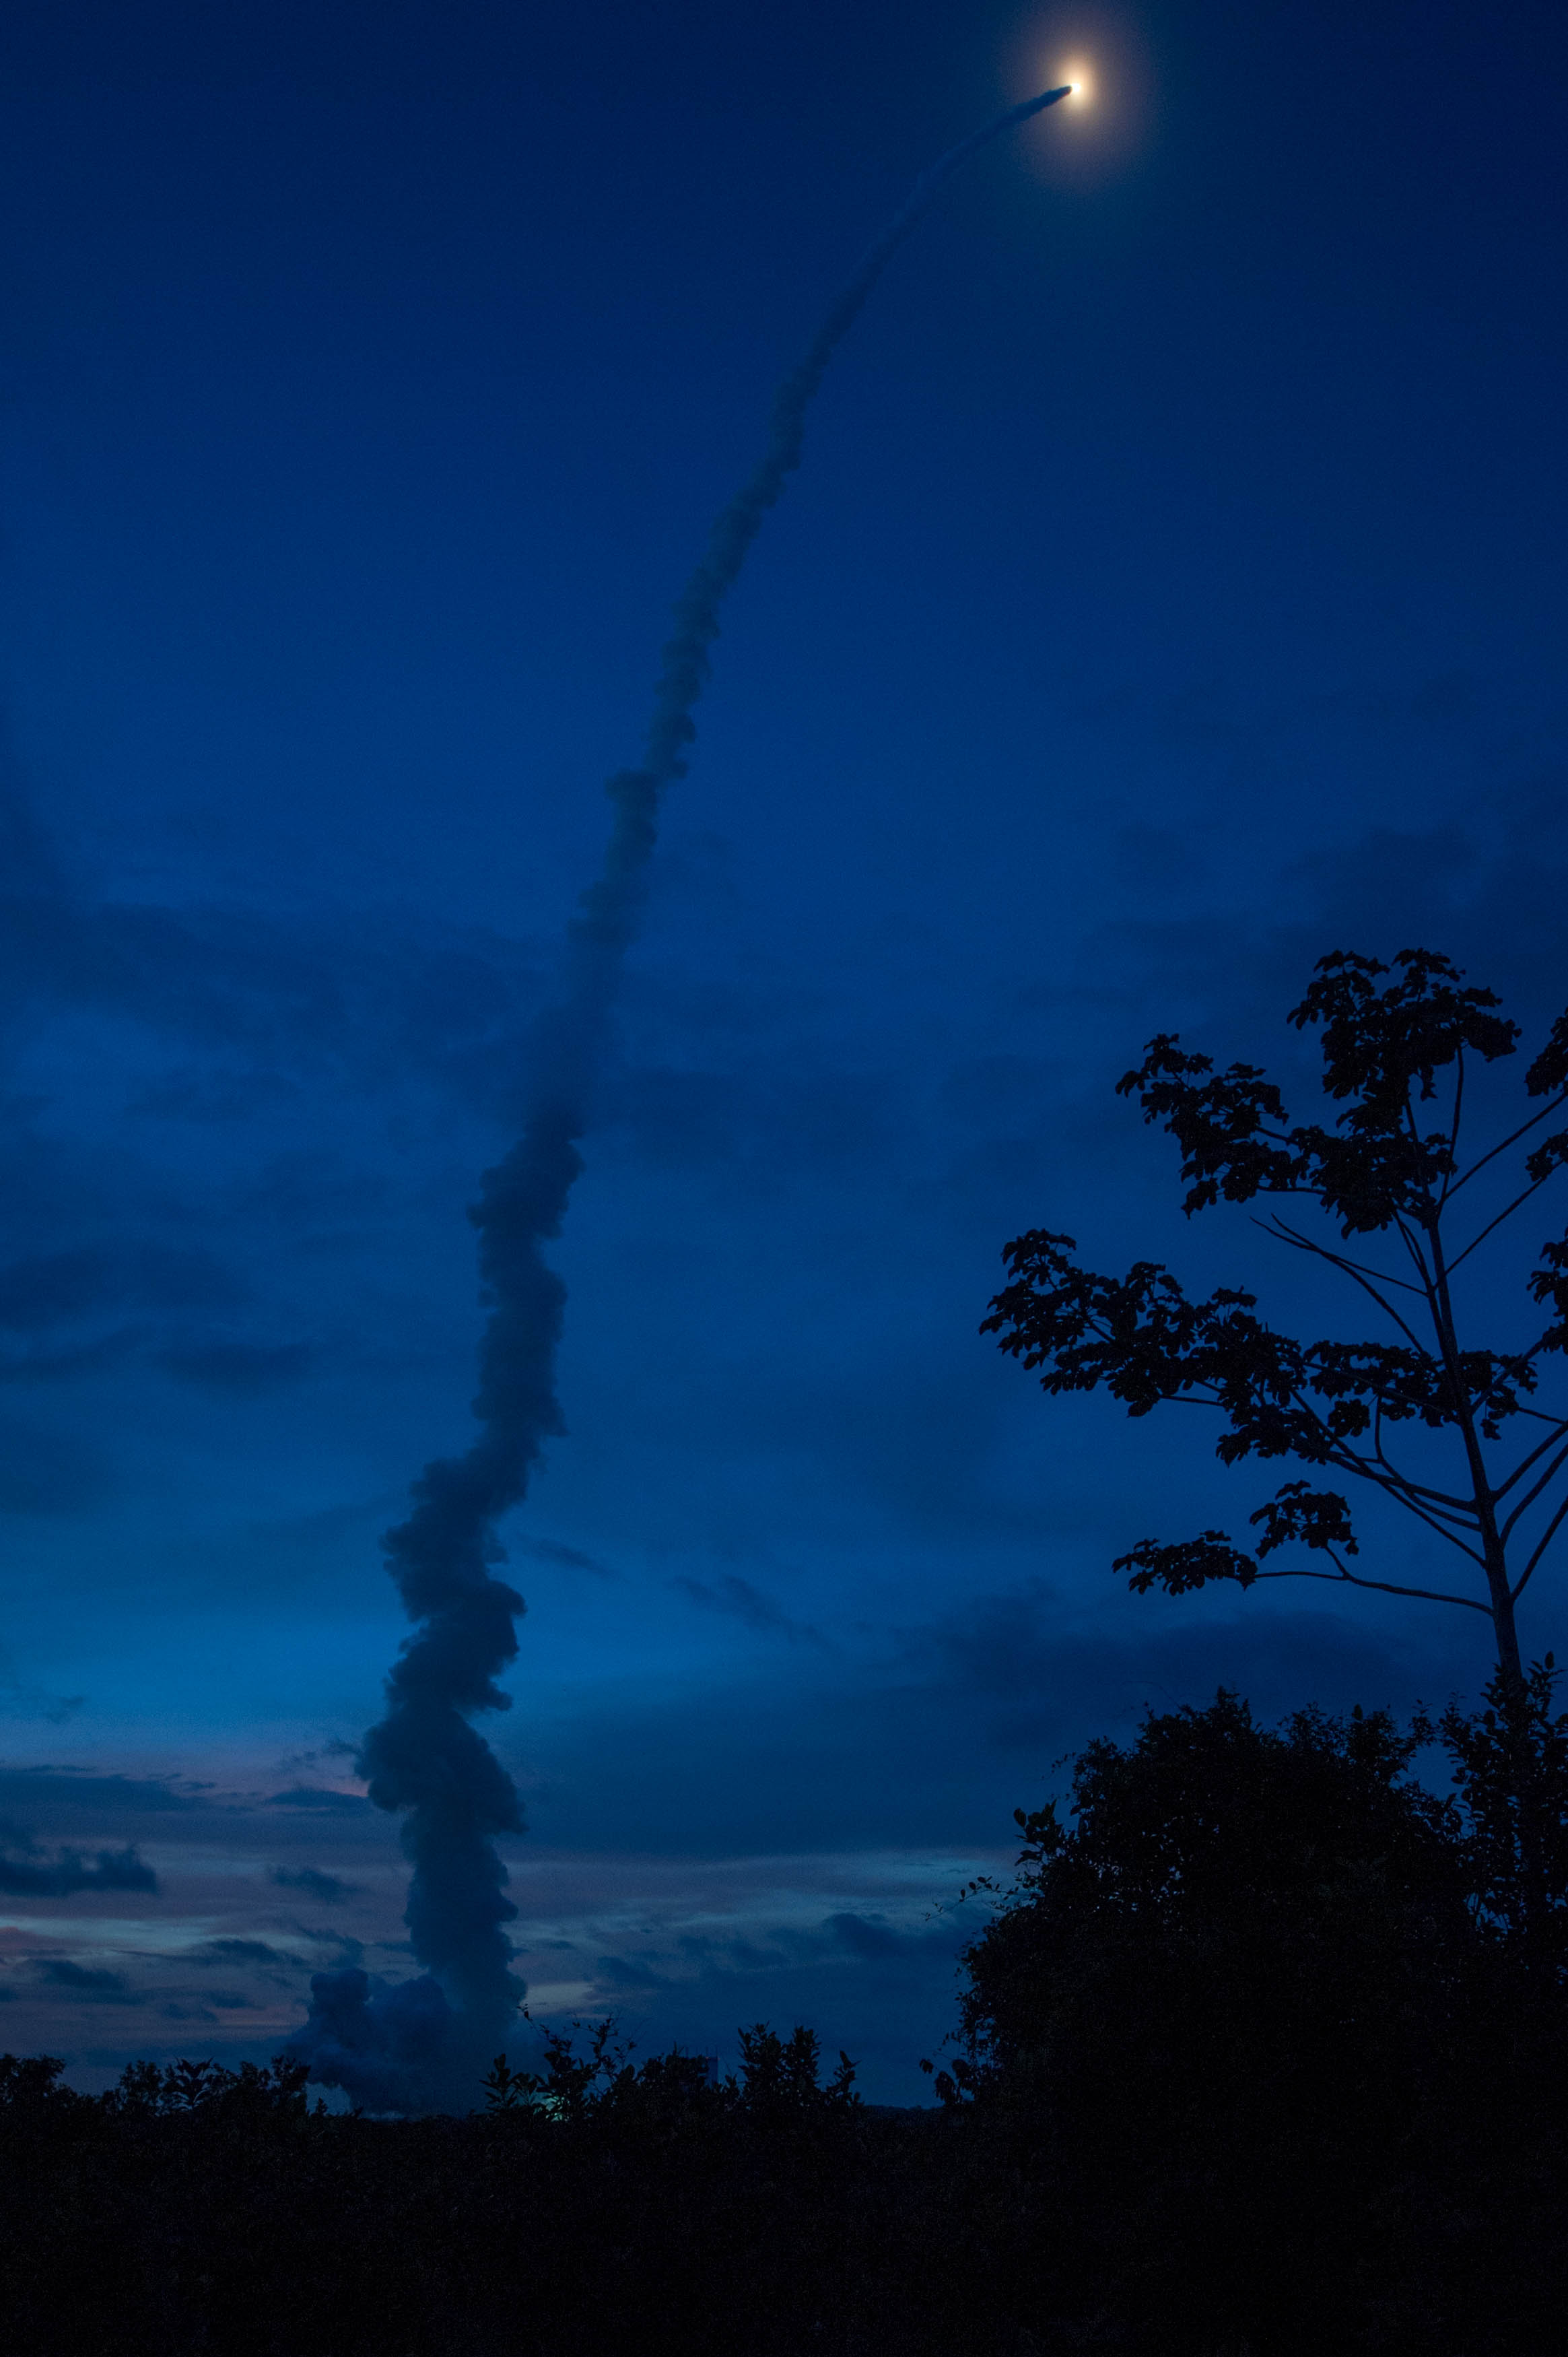 Ariane 5 Blasts Off into the Sky